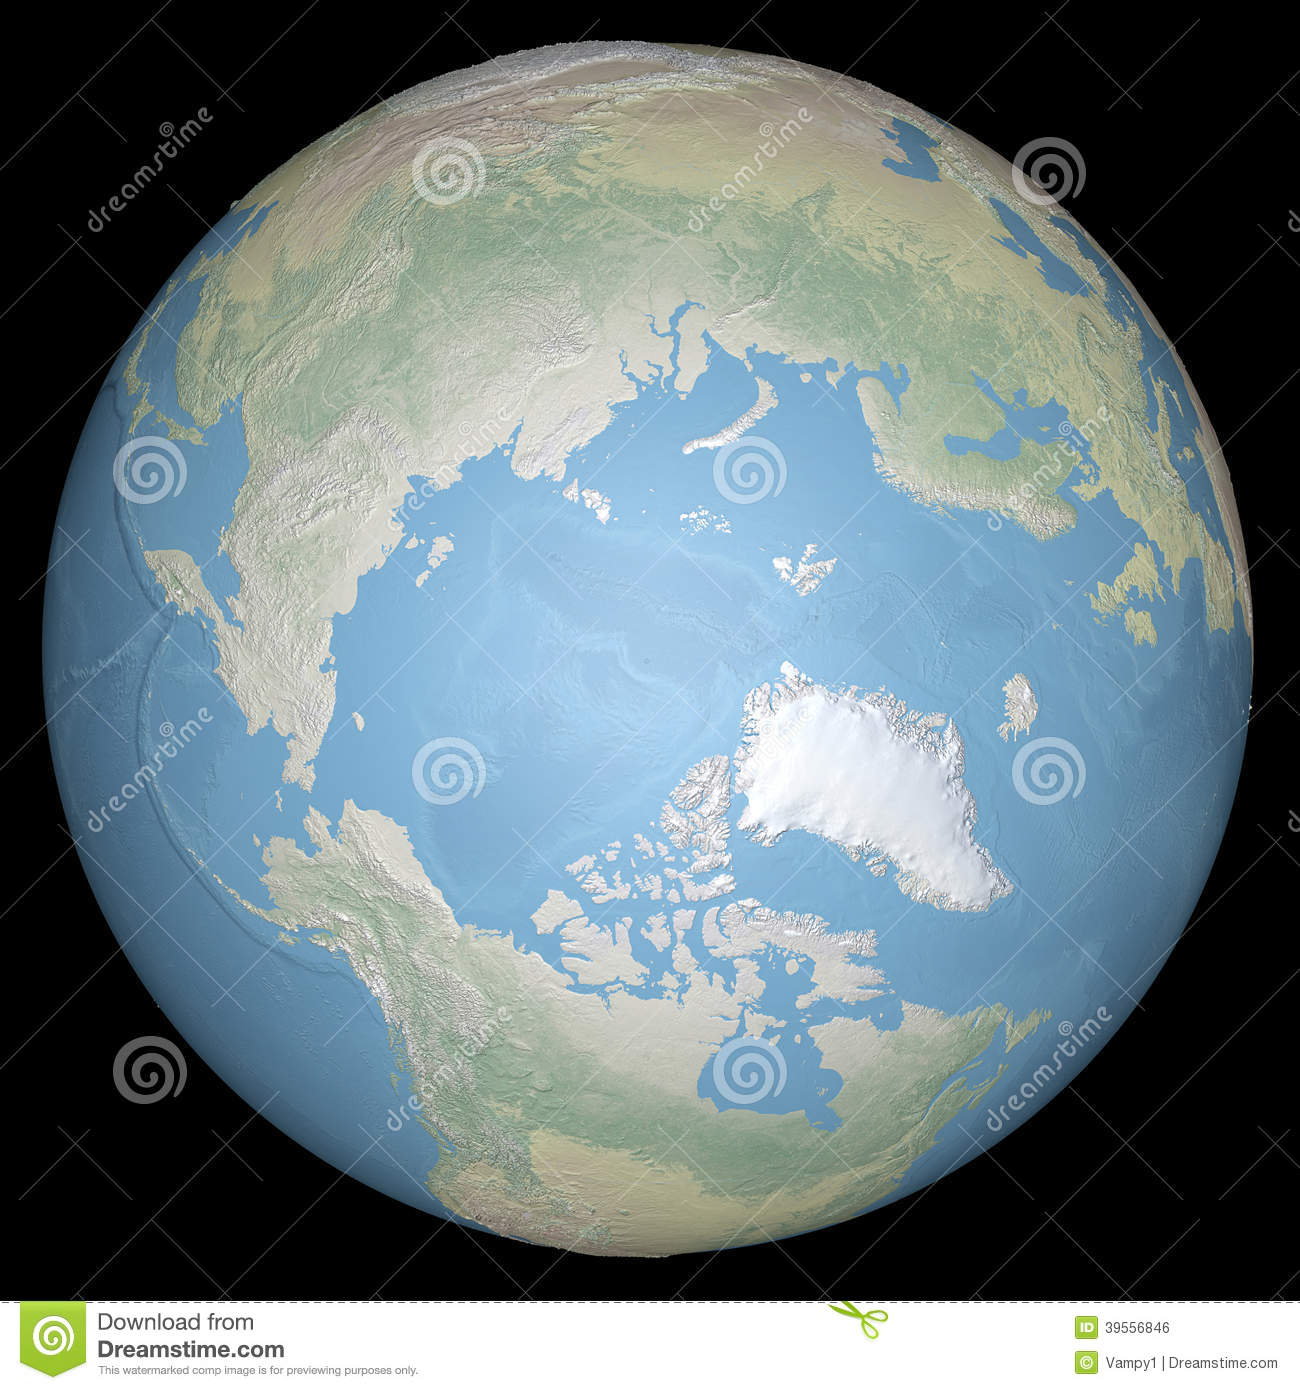 World earth globe arctic north pole relief map stock world earth globe arctic north pole relief map gumiabroncs Gallery